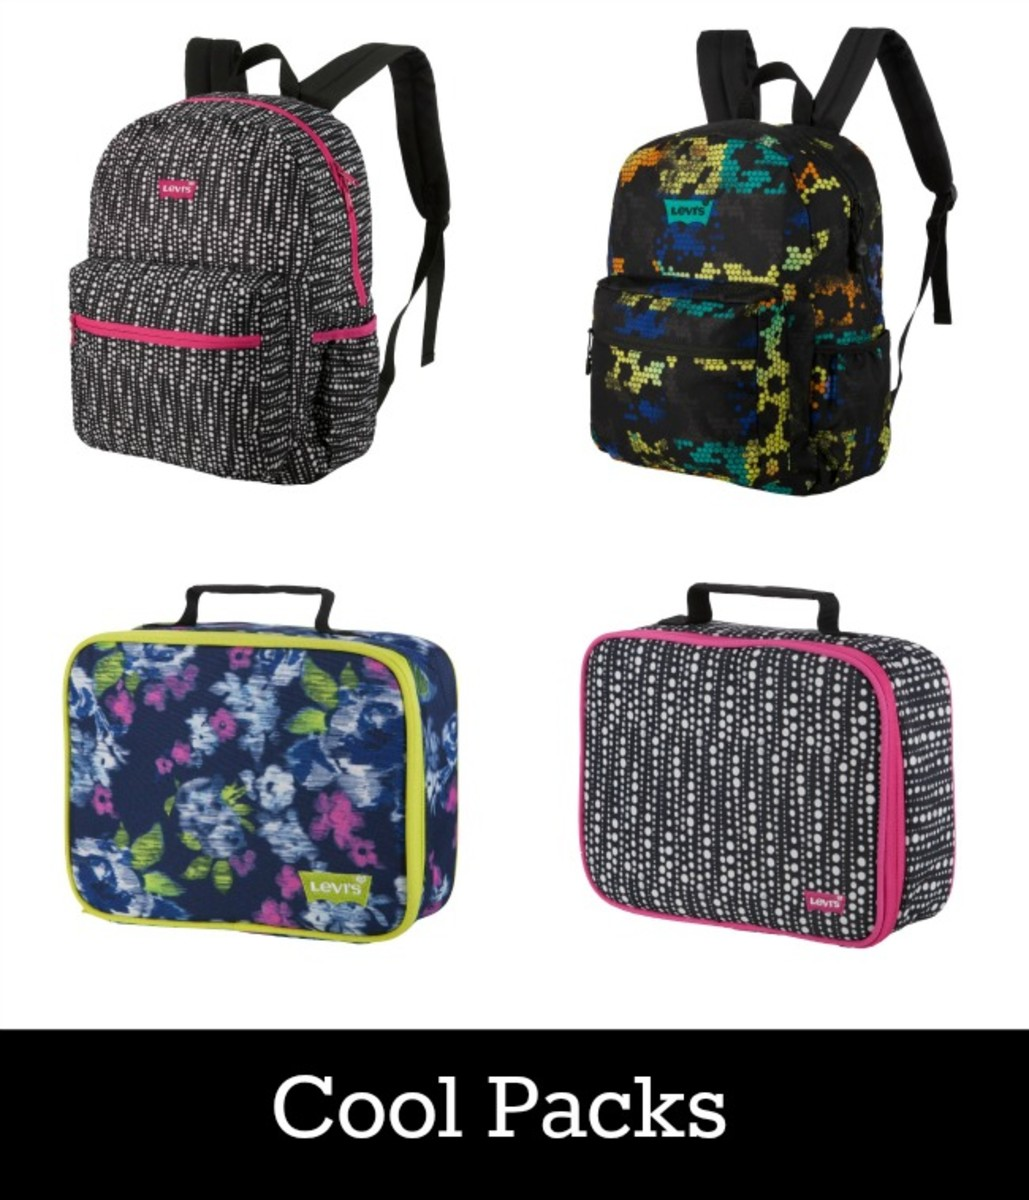 coolbackpacks